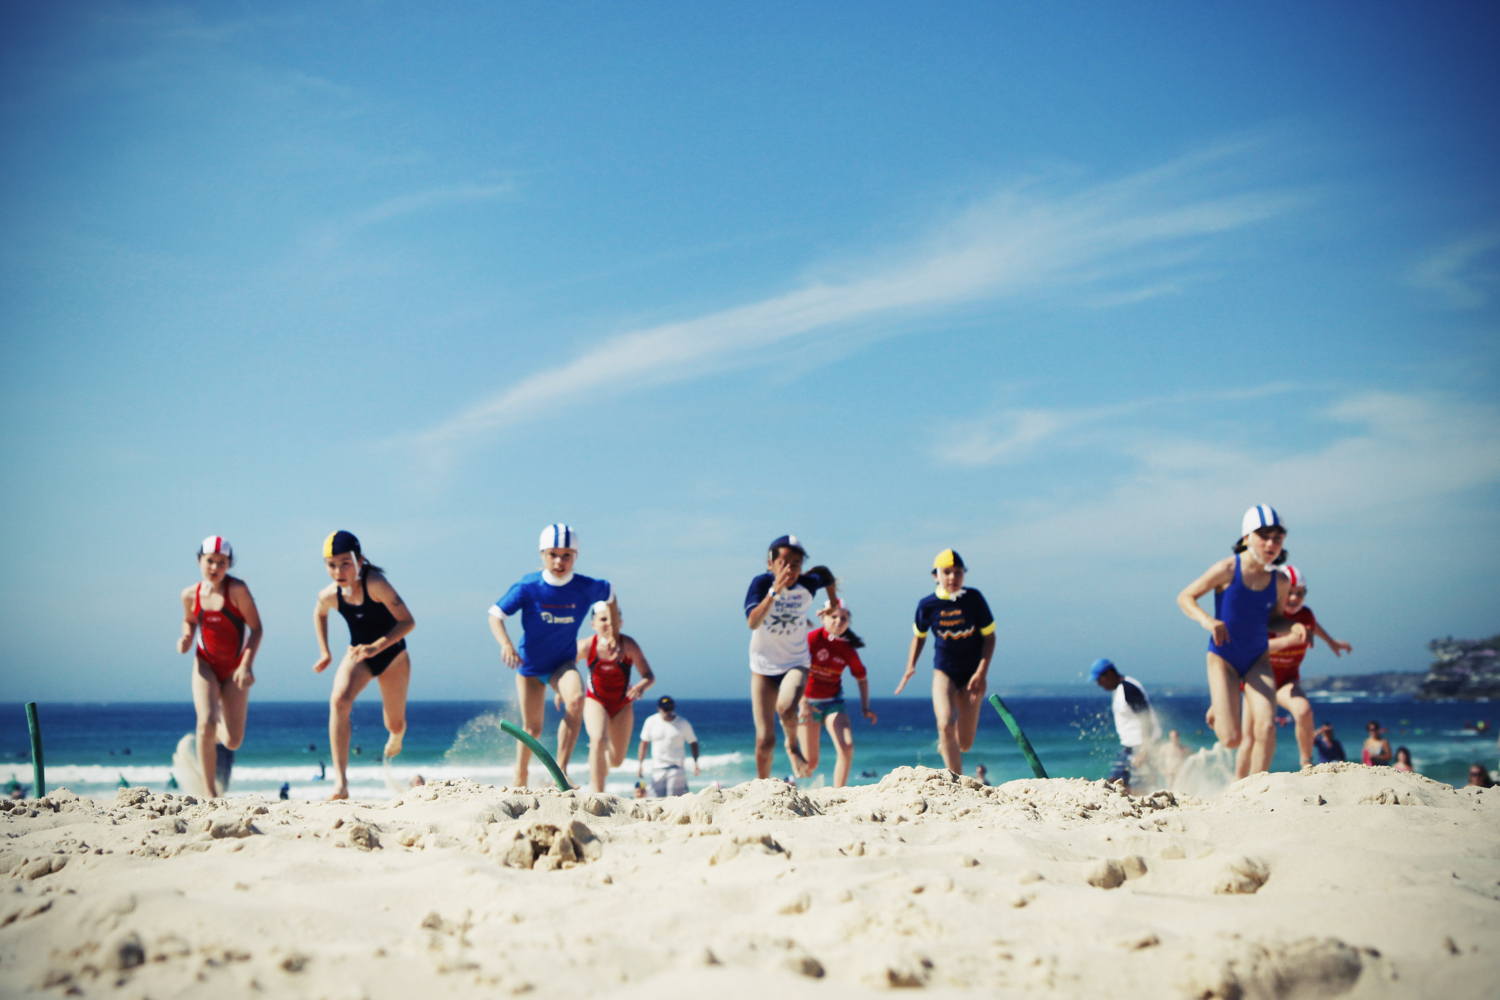 Nippers_Surf_Life_Saving_Bondi_Beach.08.jpeg